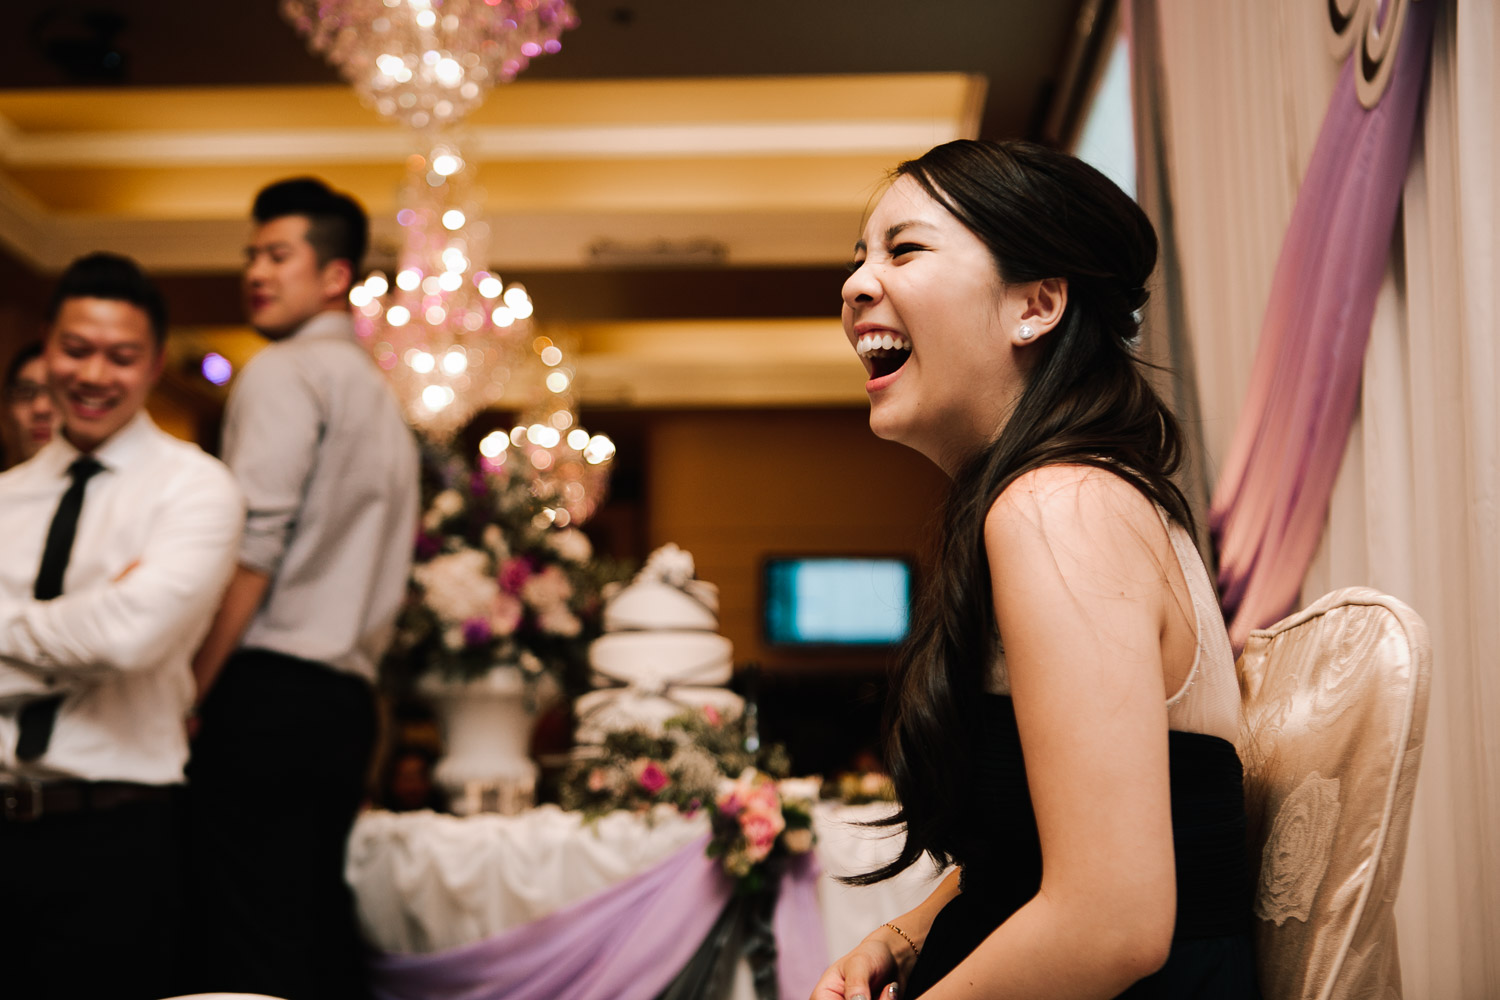 richmond wedding photography reception bride reaction